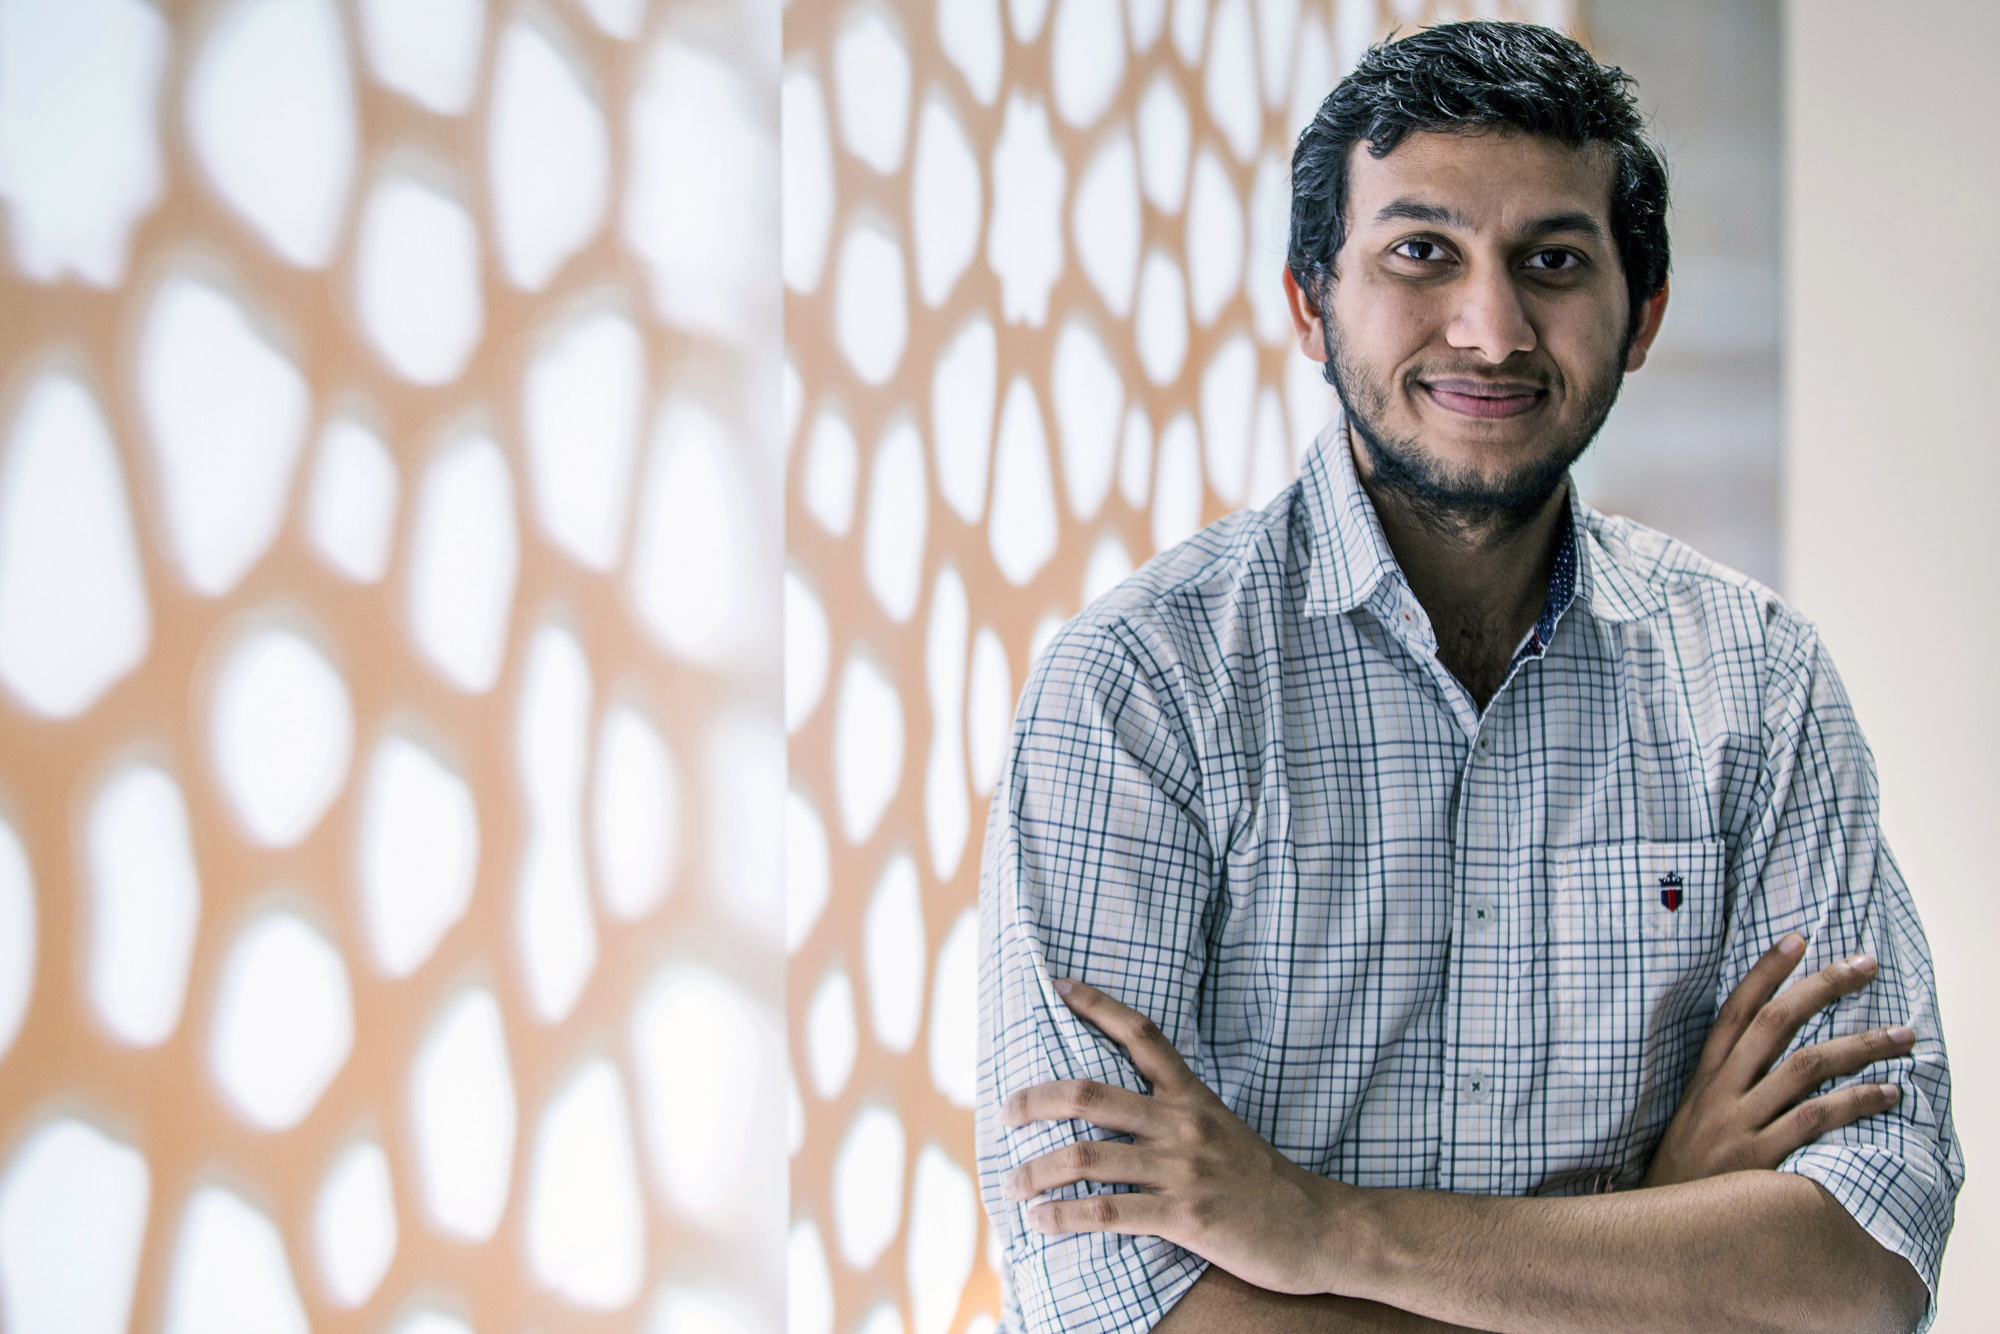 Oyo Rooms Founder And CEO Ritesh Agarwal Interview